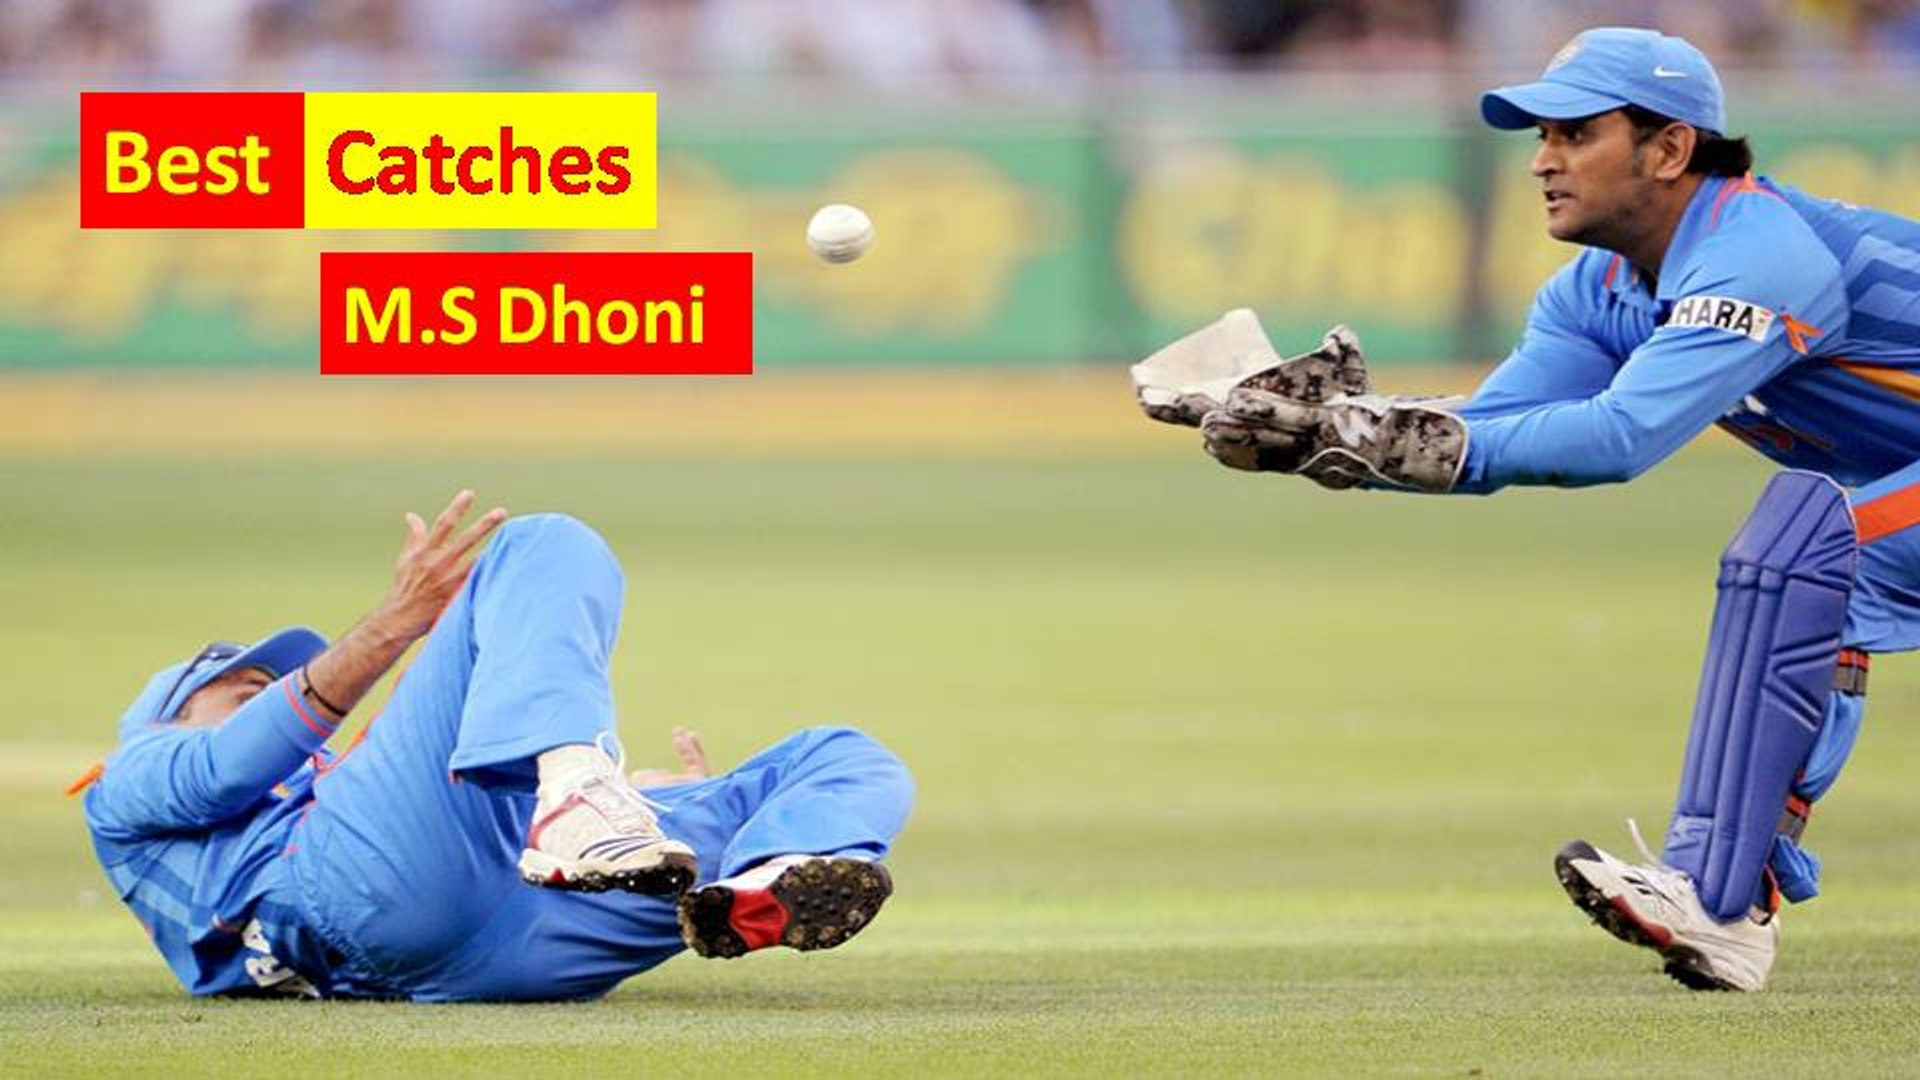 Best Catches by M.S Dhoni || Must watch || All time Best catches by M.S Dhoni